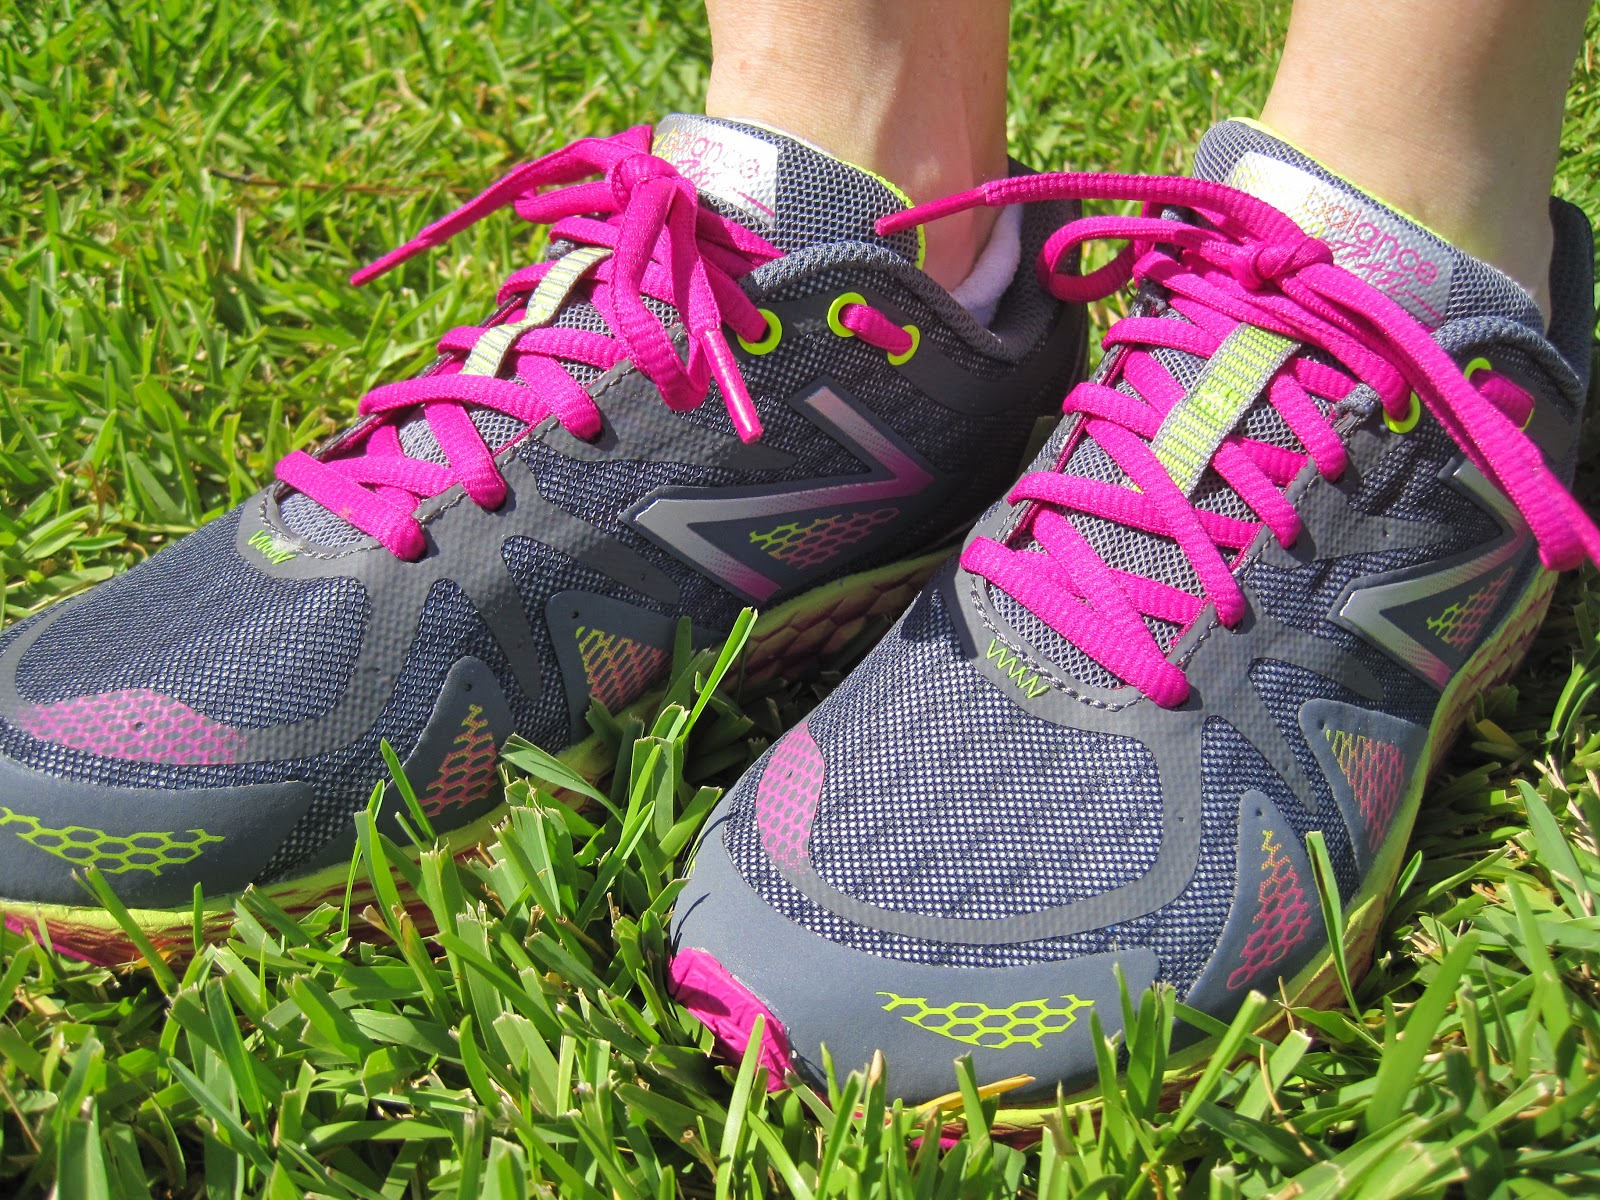 reputable site c75f5 017a7 New Balance 980 Trail - Shoe Review - Trail And Ultra ...